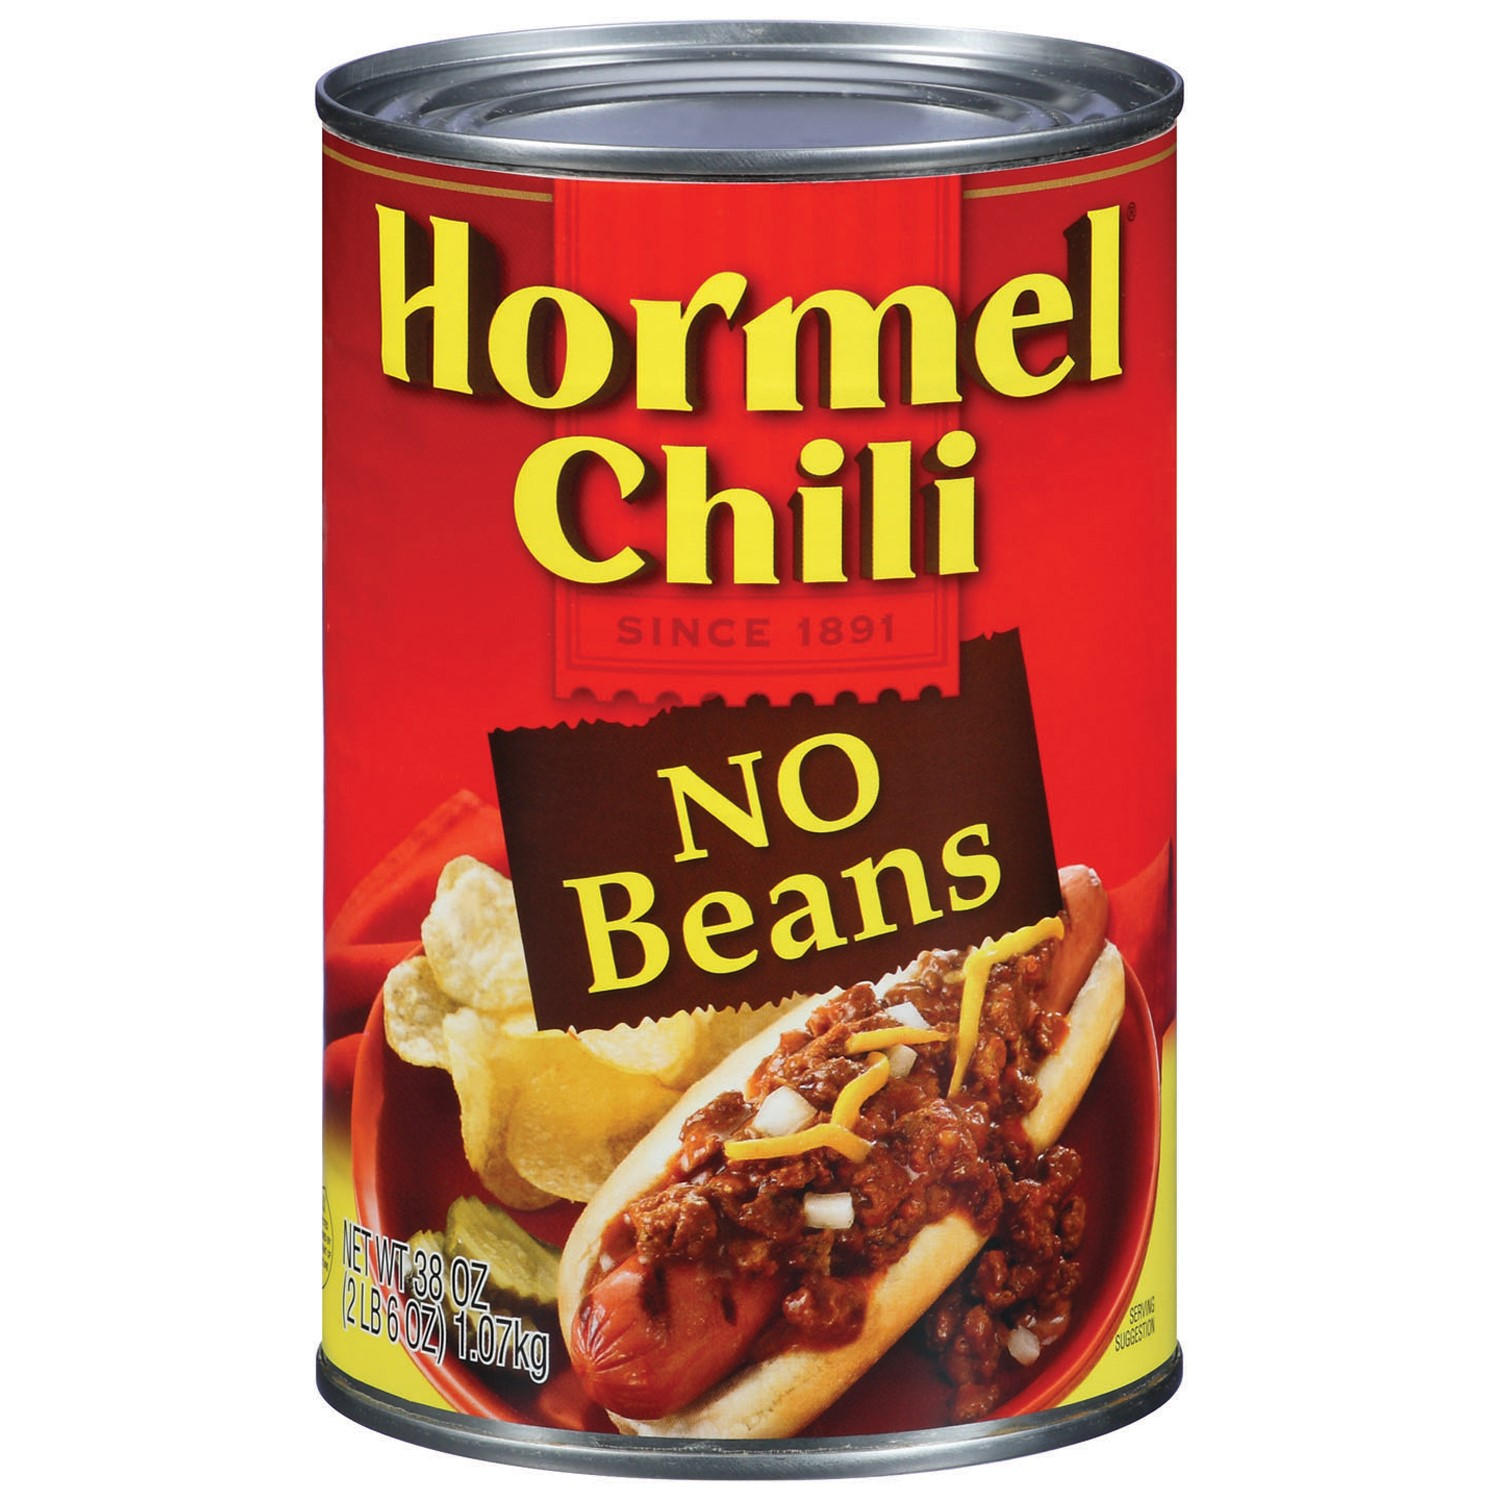 Hormel Chili No Beans, 38 Oz